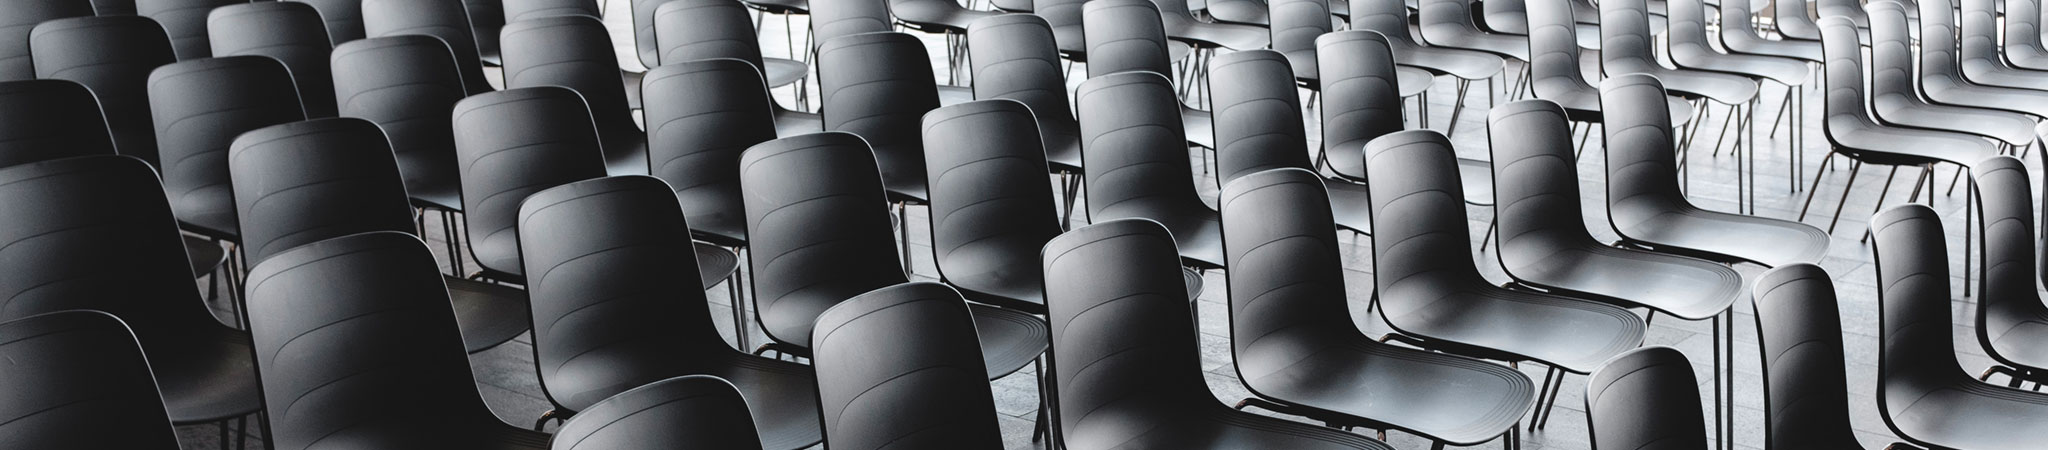 rows of empty grey chairs